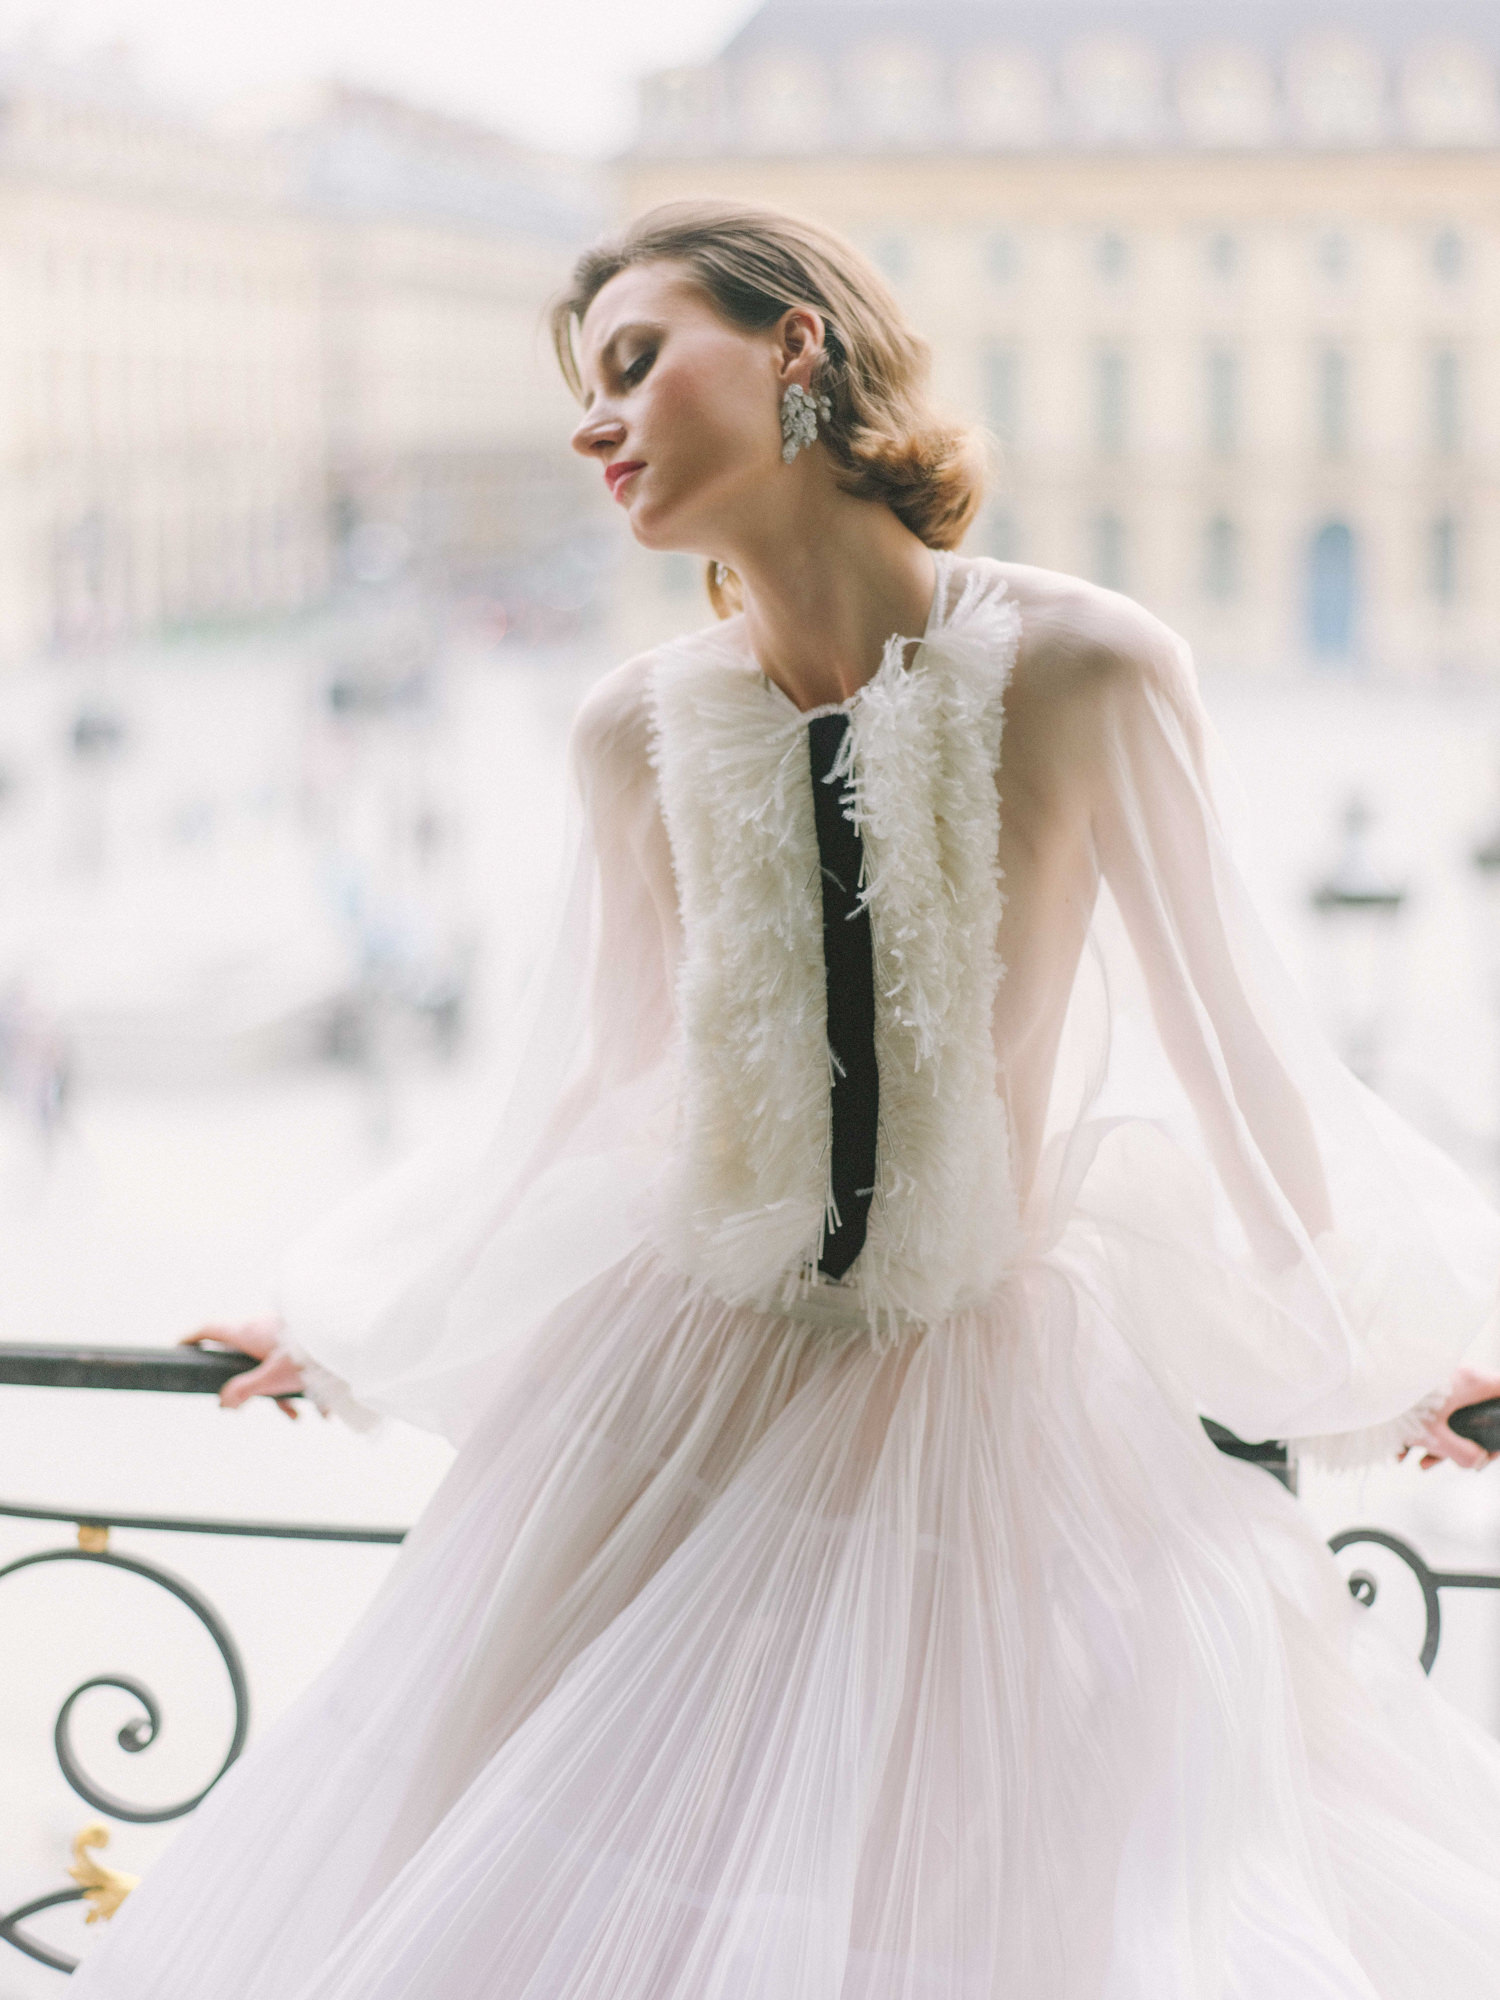 Sheer dress with feathered and ribbon bodice - Greg Finck Photography